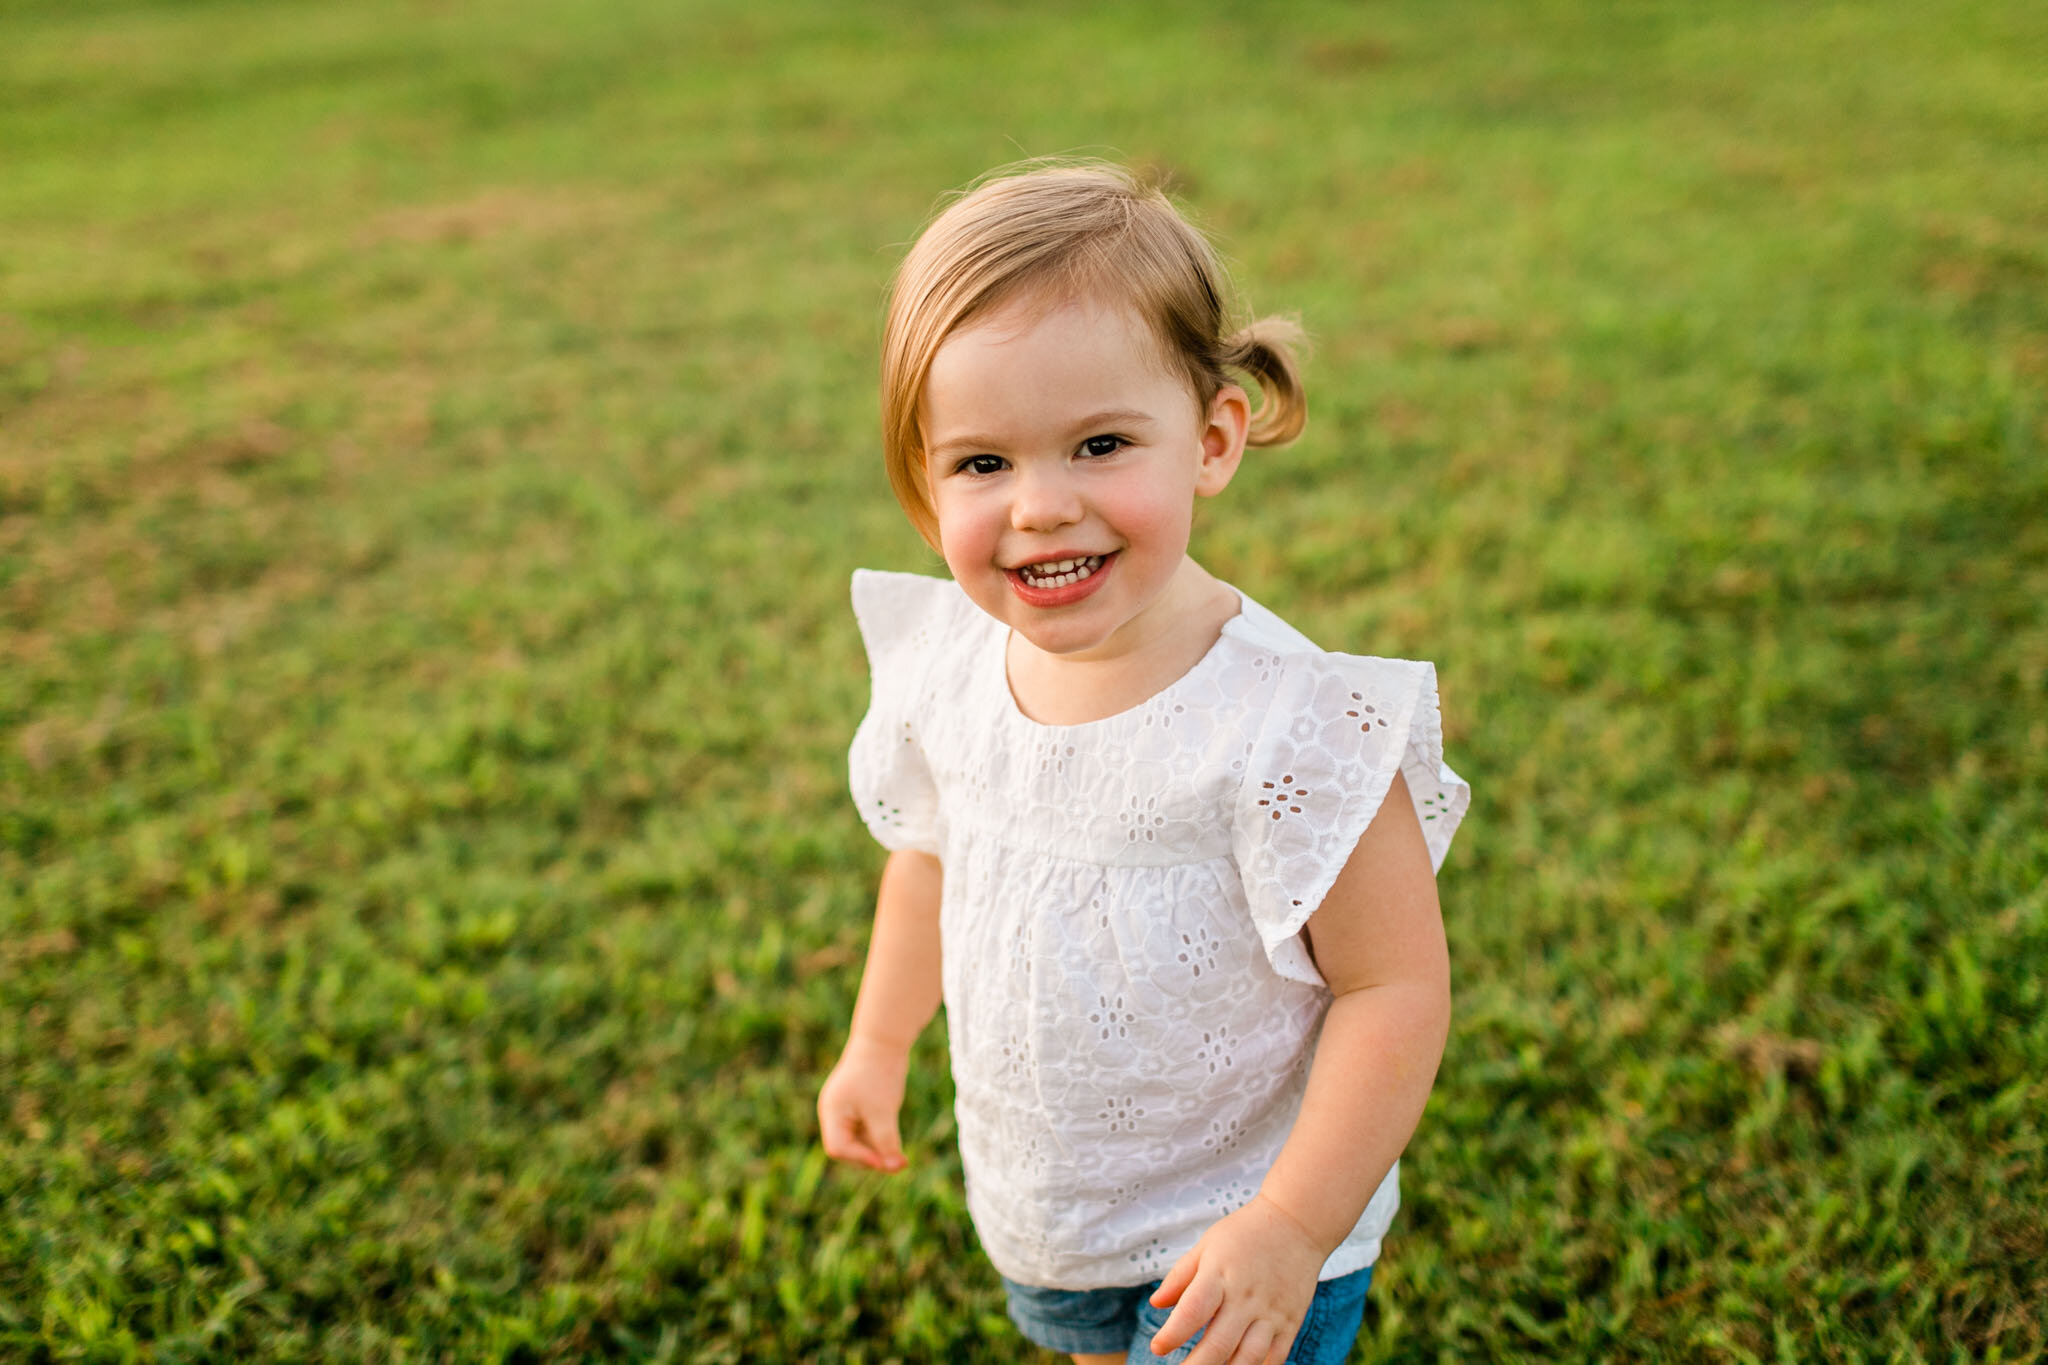 Raleigh Family Photographer | By G. Lin Photography | Dorothea Dix Park | Girl smiling at camera